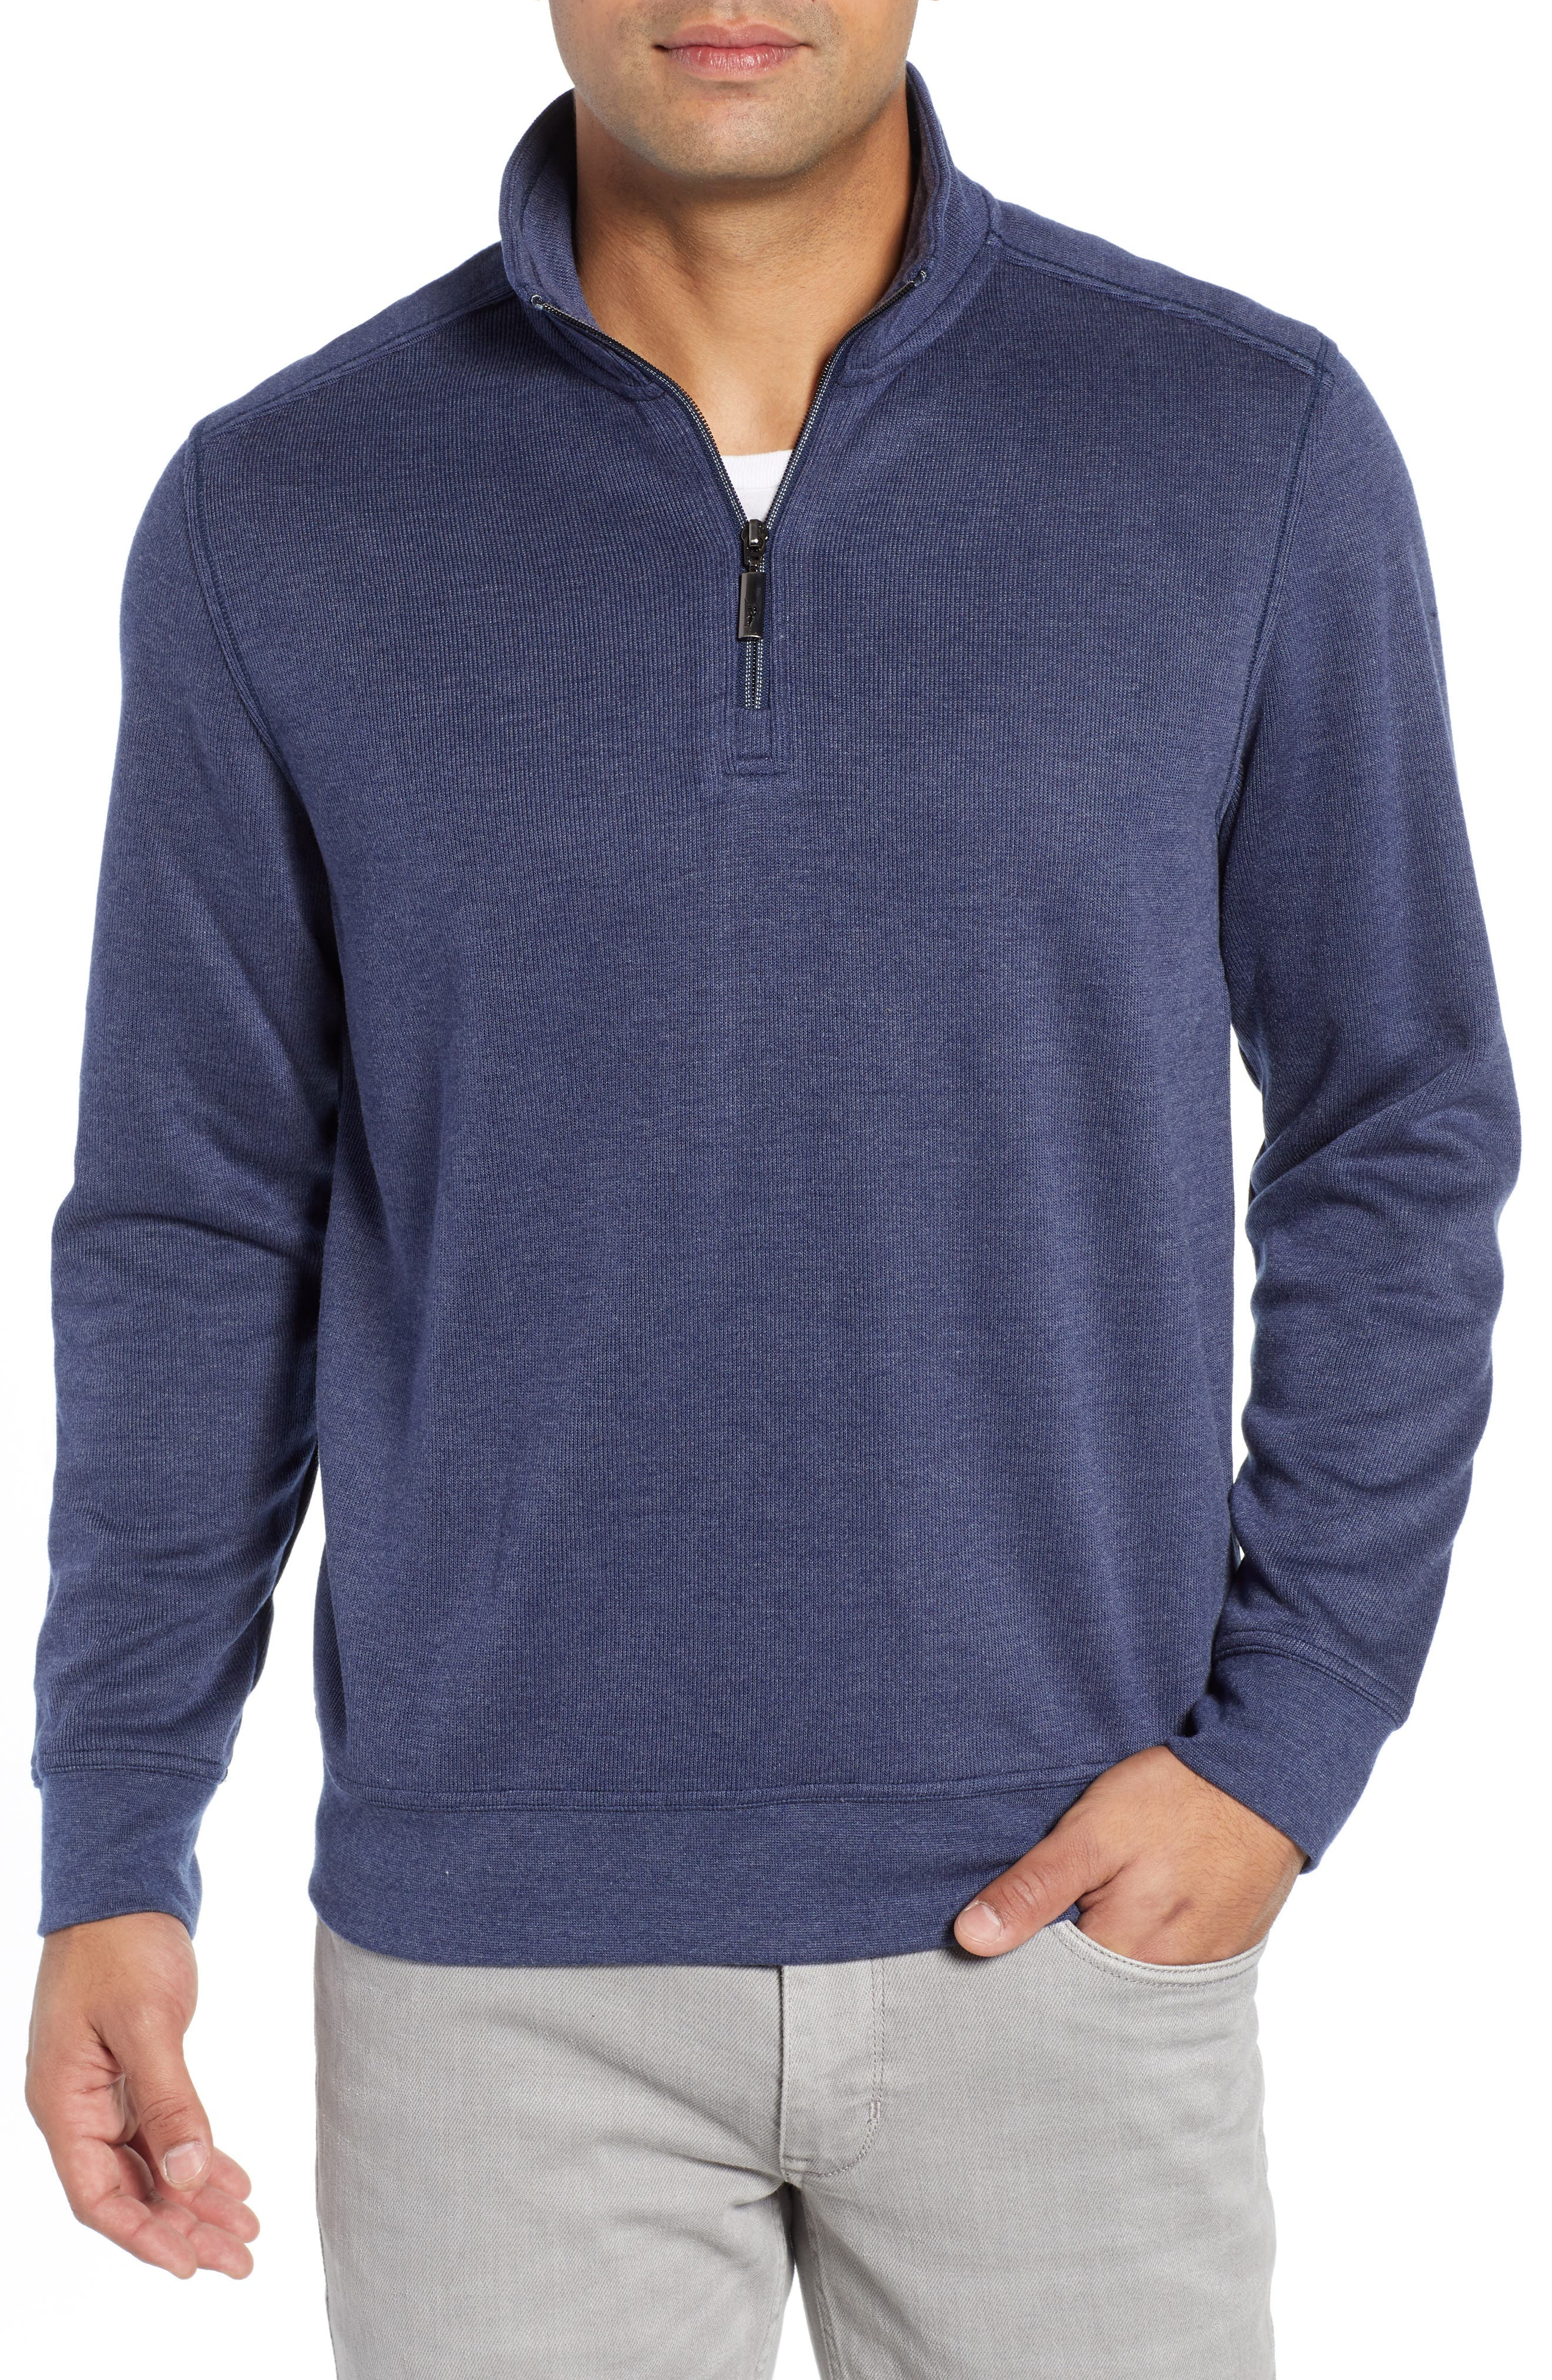 Sideline Quarter Zip Pullover,                             Main thumbnail 1, color,                             OCEAN DEEP